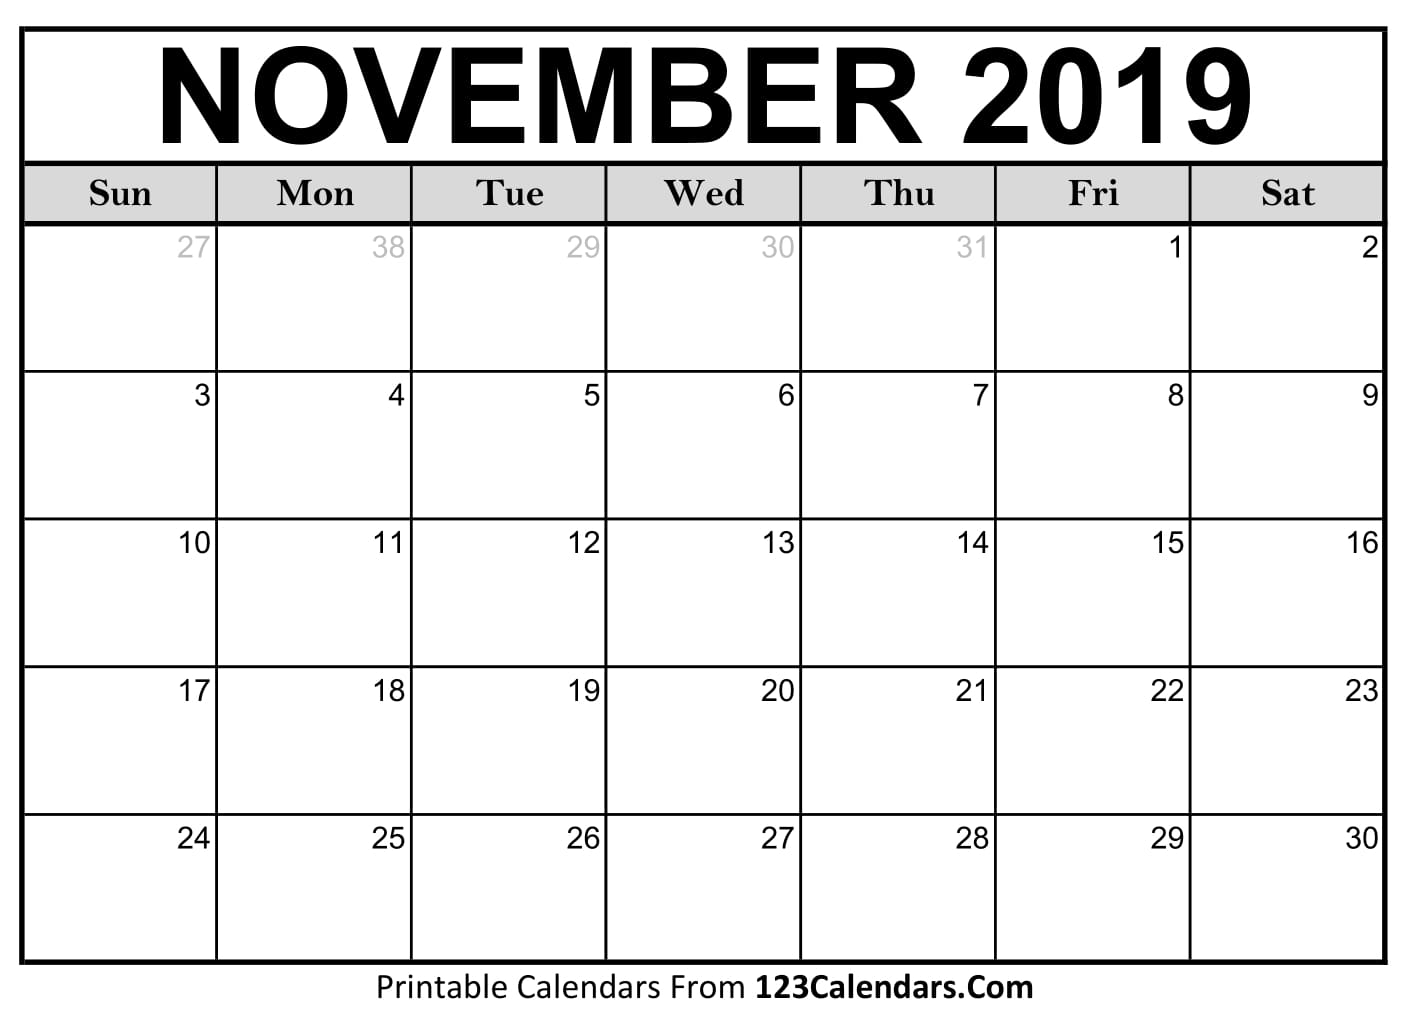 image relating to Printable November Calendar named November 2019 Printable Calendar